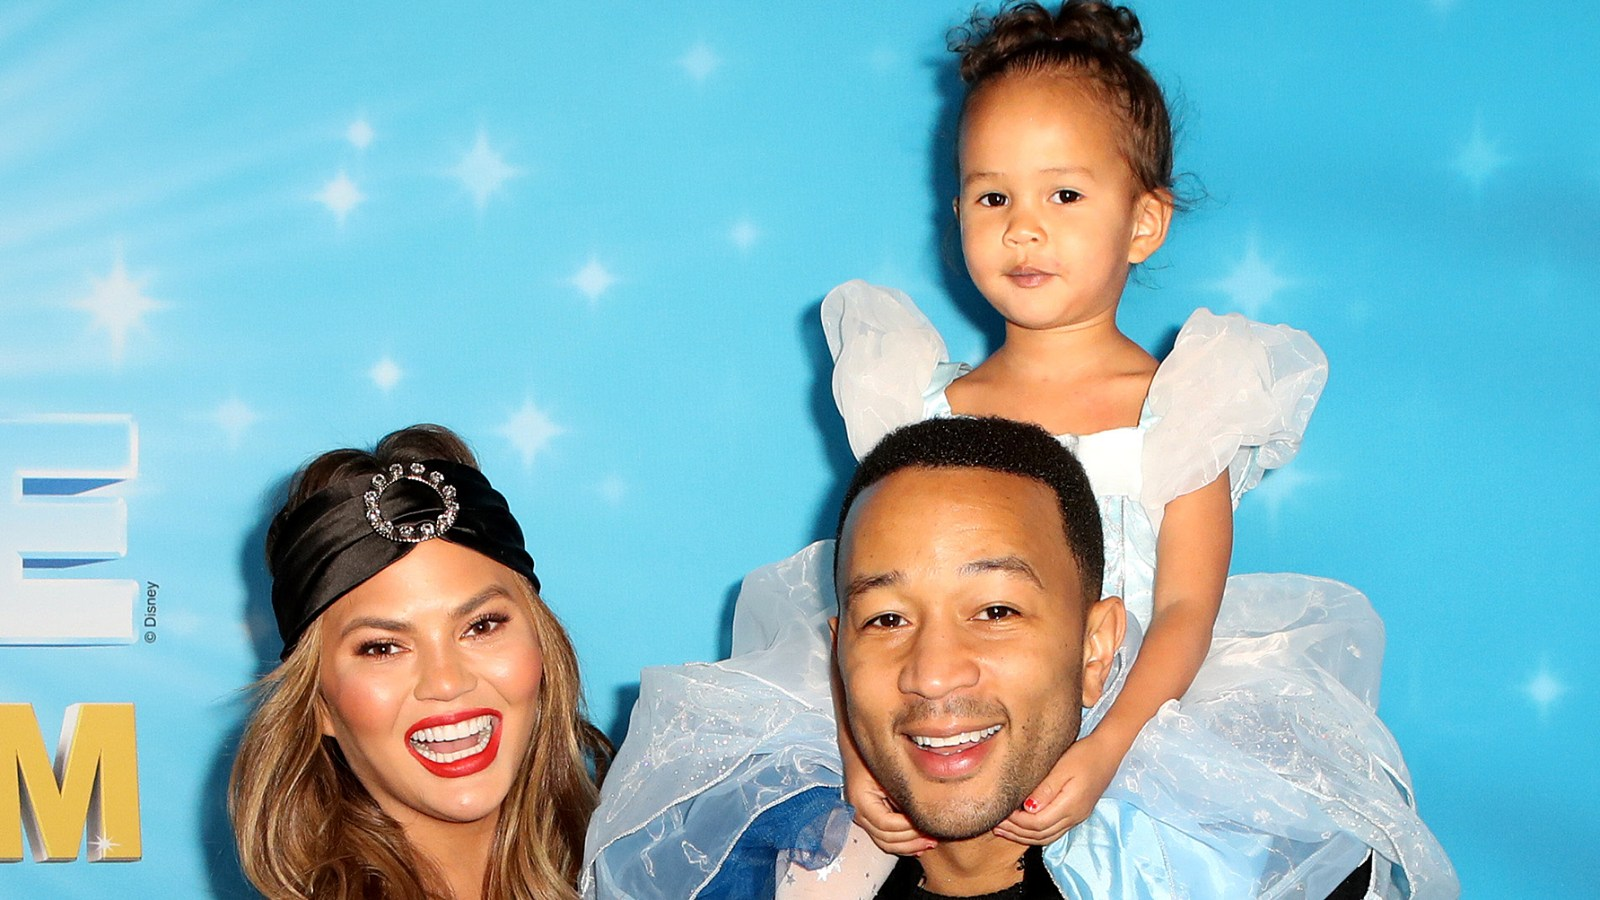 ea18edab1e John Legend Sings 'Baby Shark' With His 2-Year-Old Daughter Luna in an  Adorable Duet